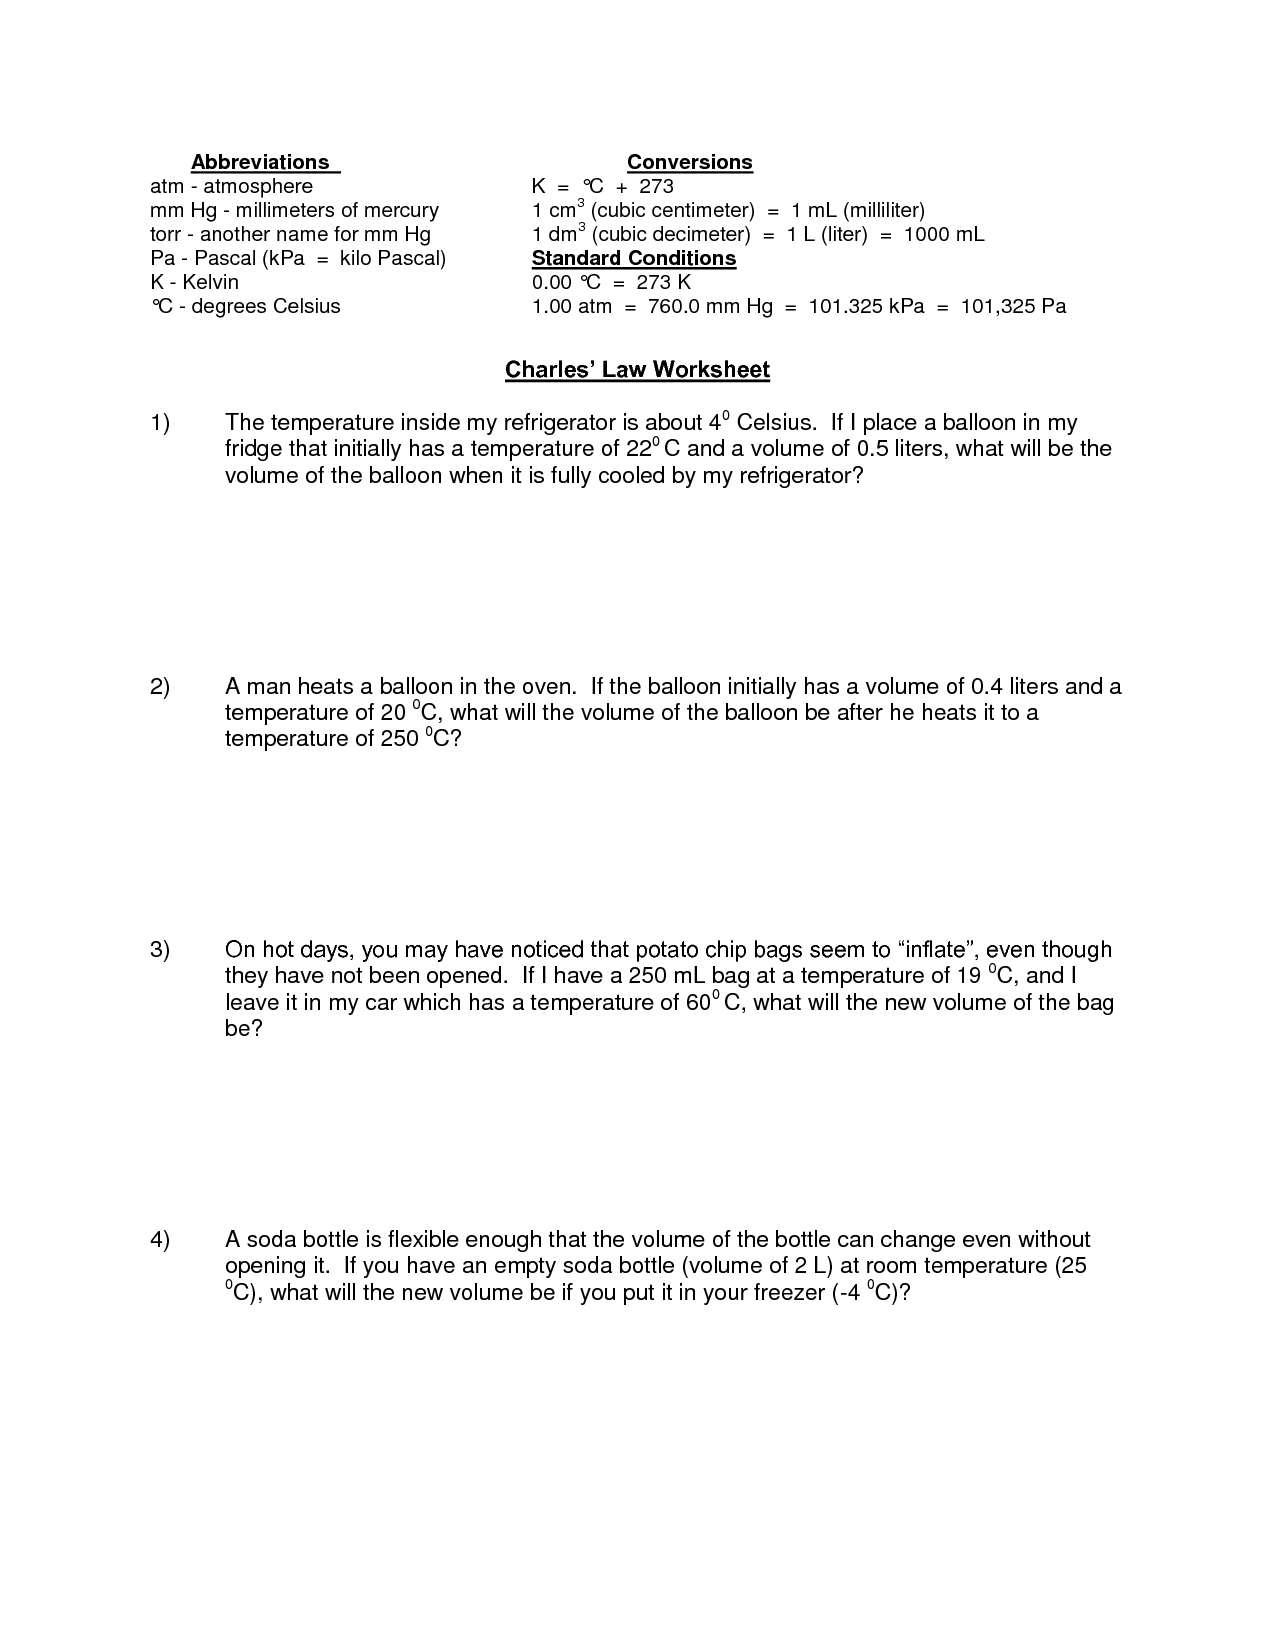 Gas Laws Practice Worksheet With Answers